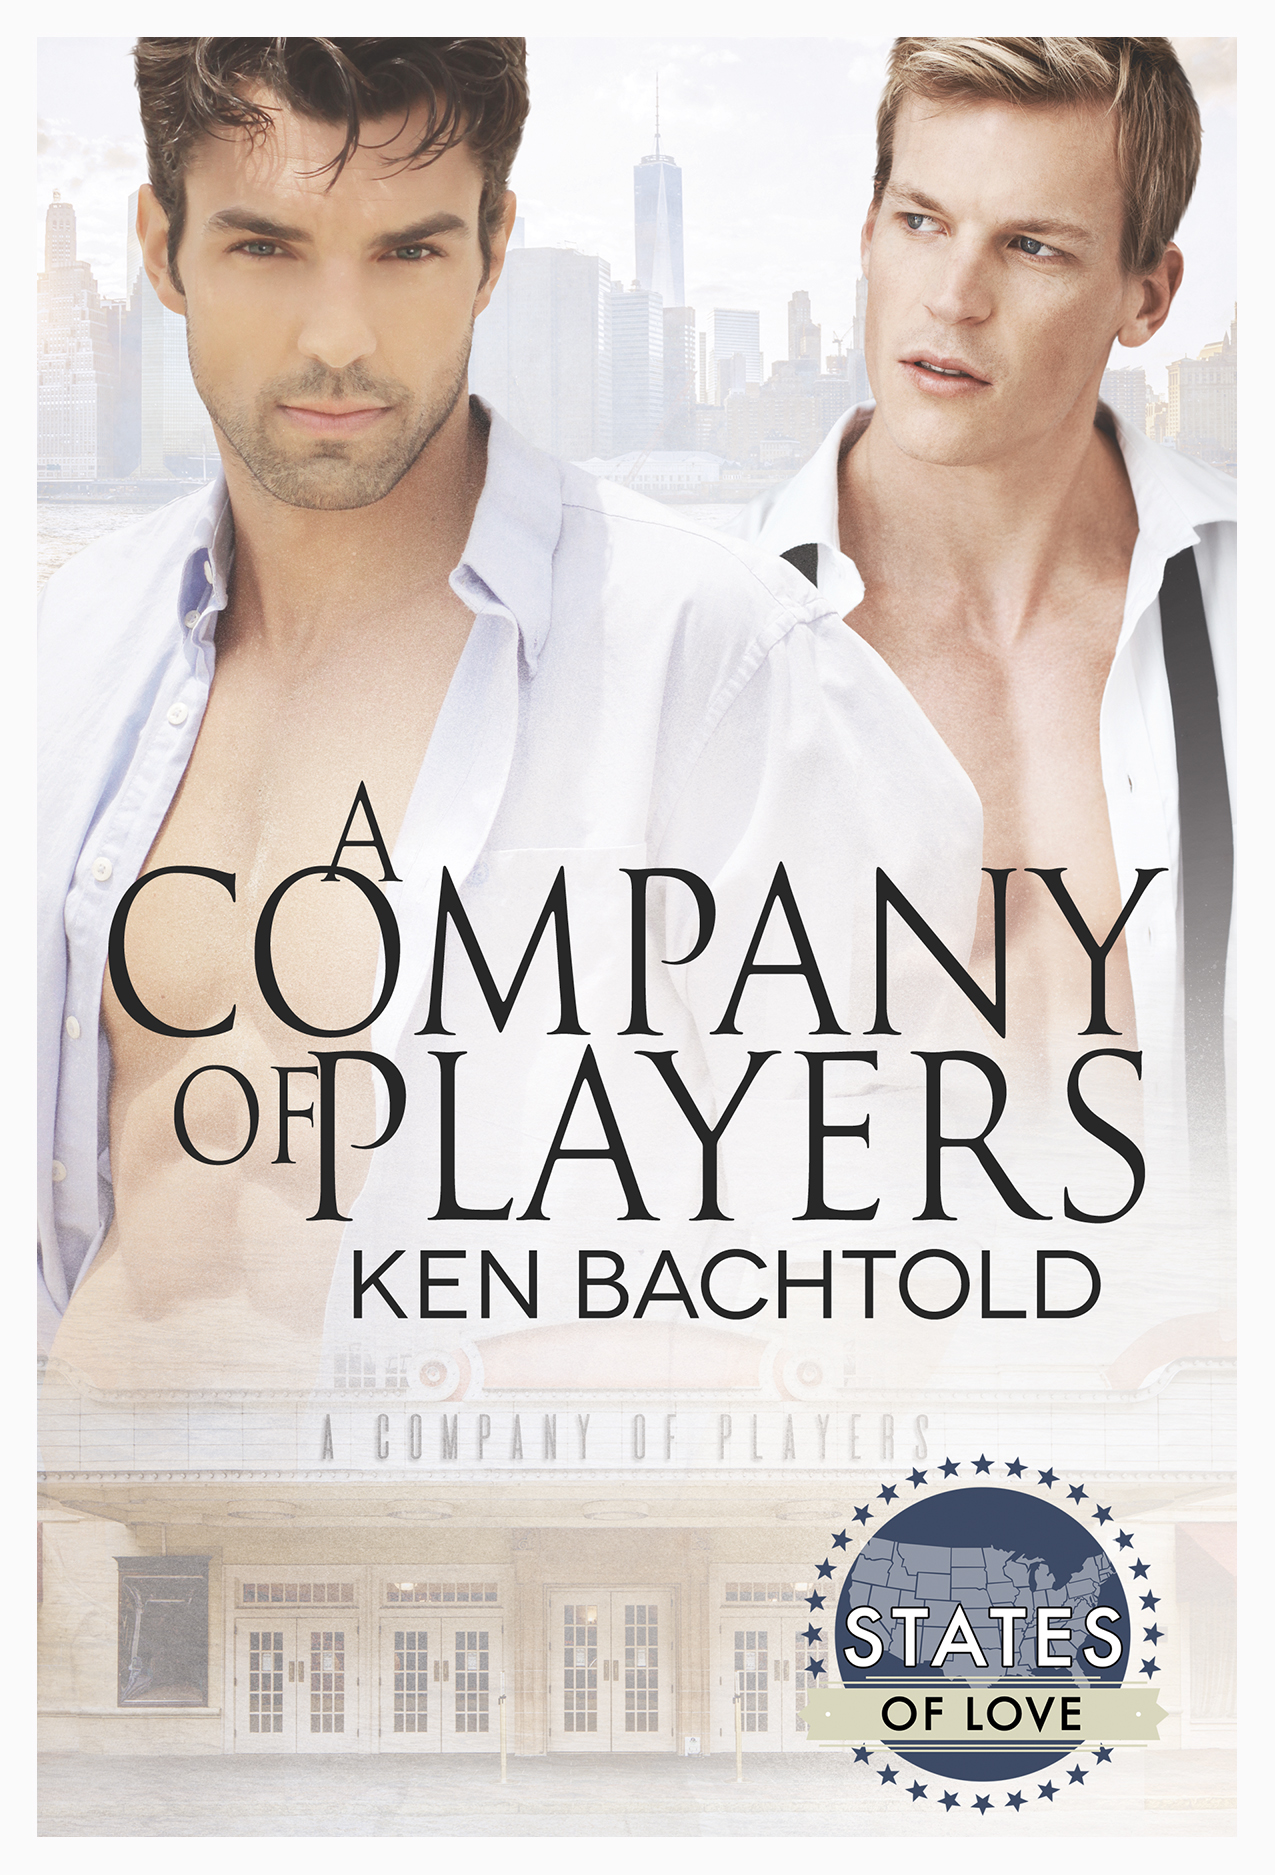 A Company of Players by Ken Bachtold